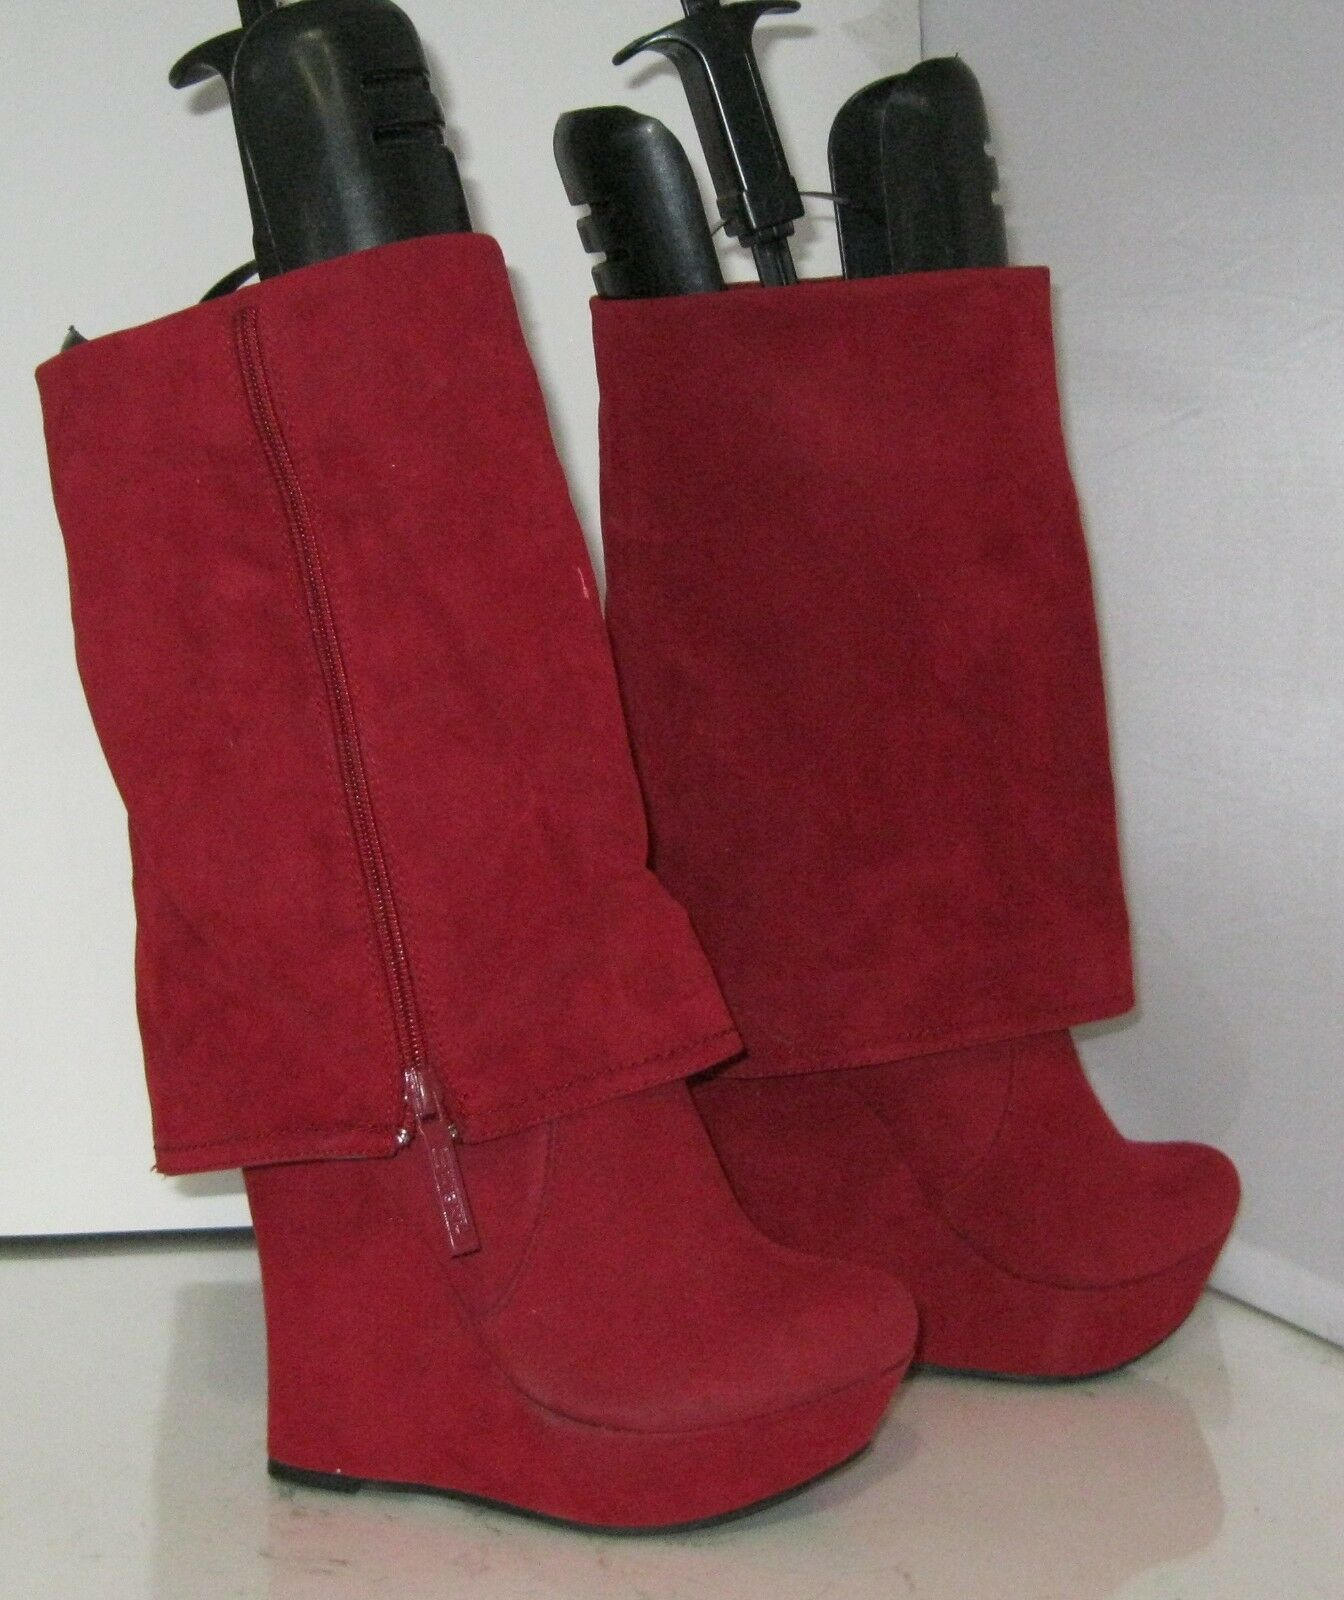 Red 5.5  High Wedge Heel 1.5  Platform Round Toe Mid-Calf Sexy Boot Size 6.5